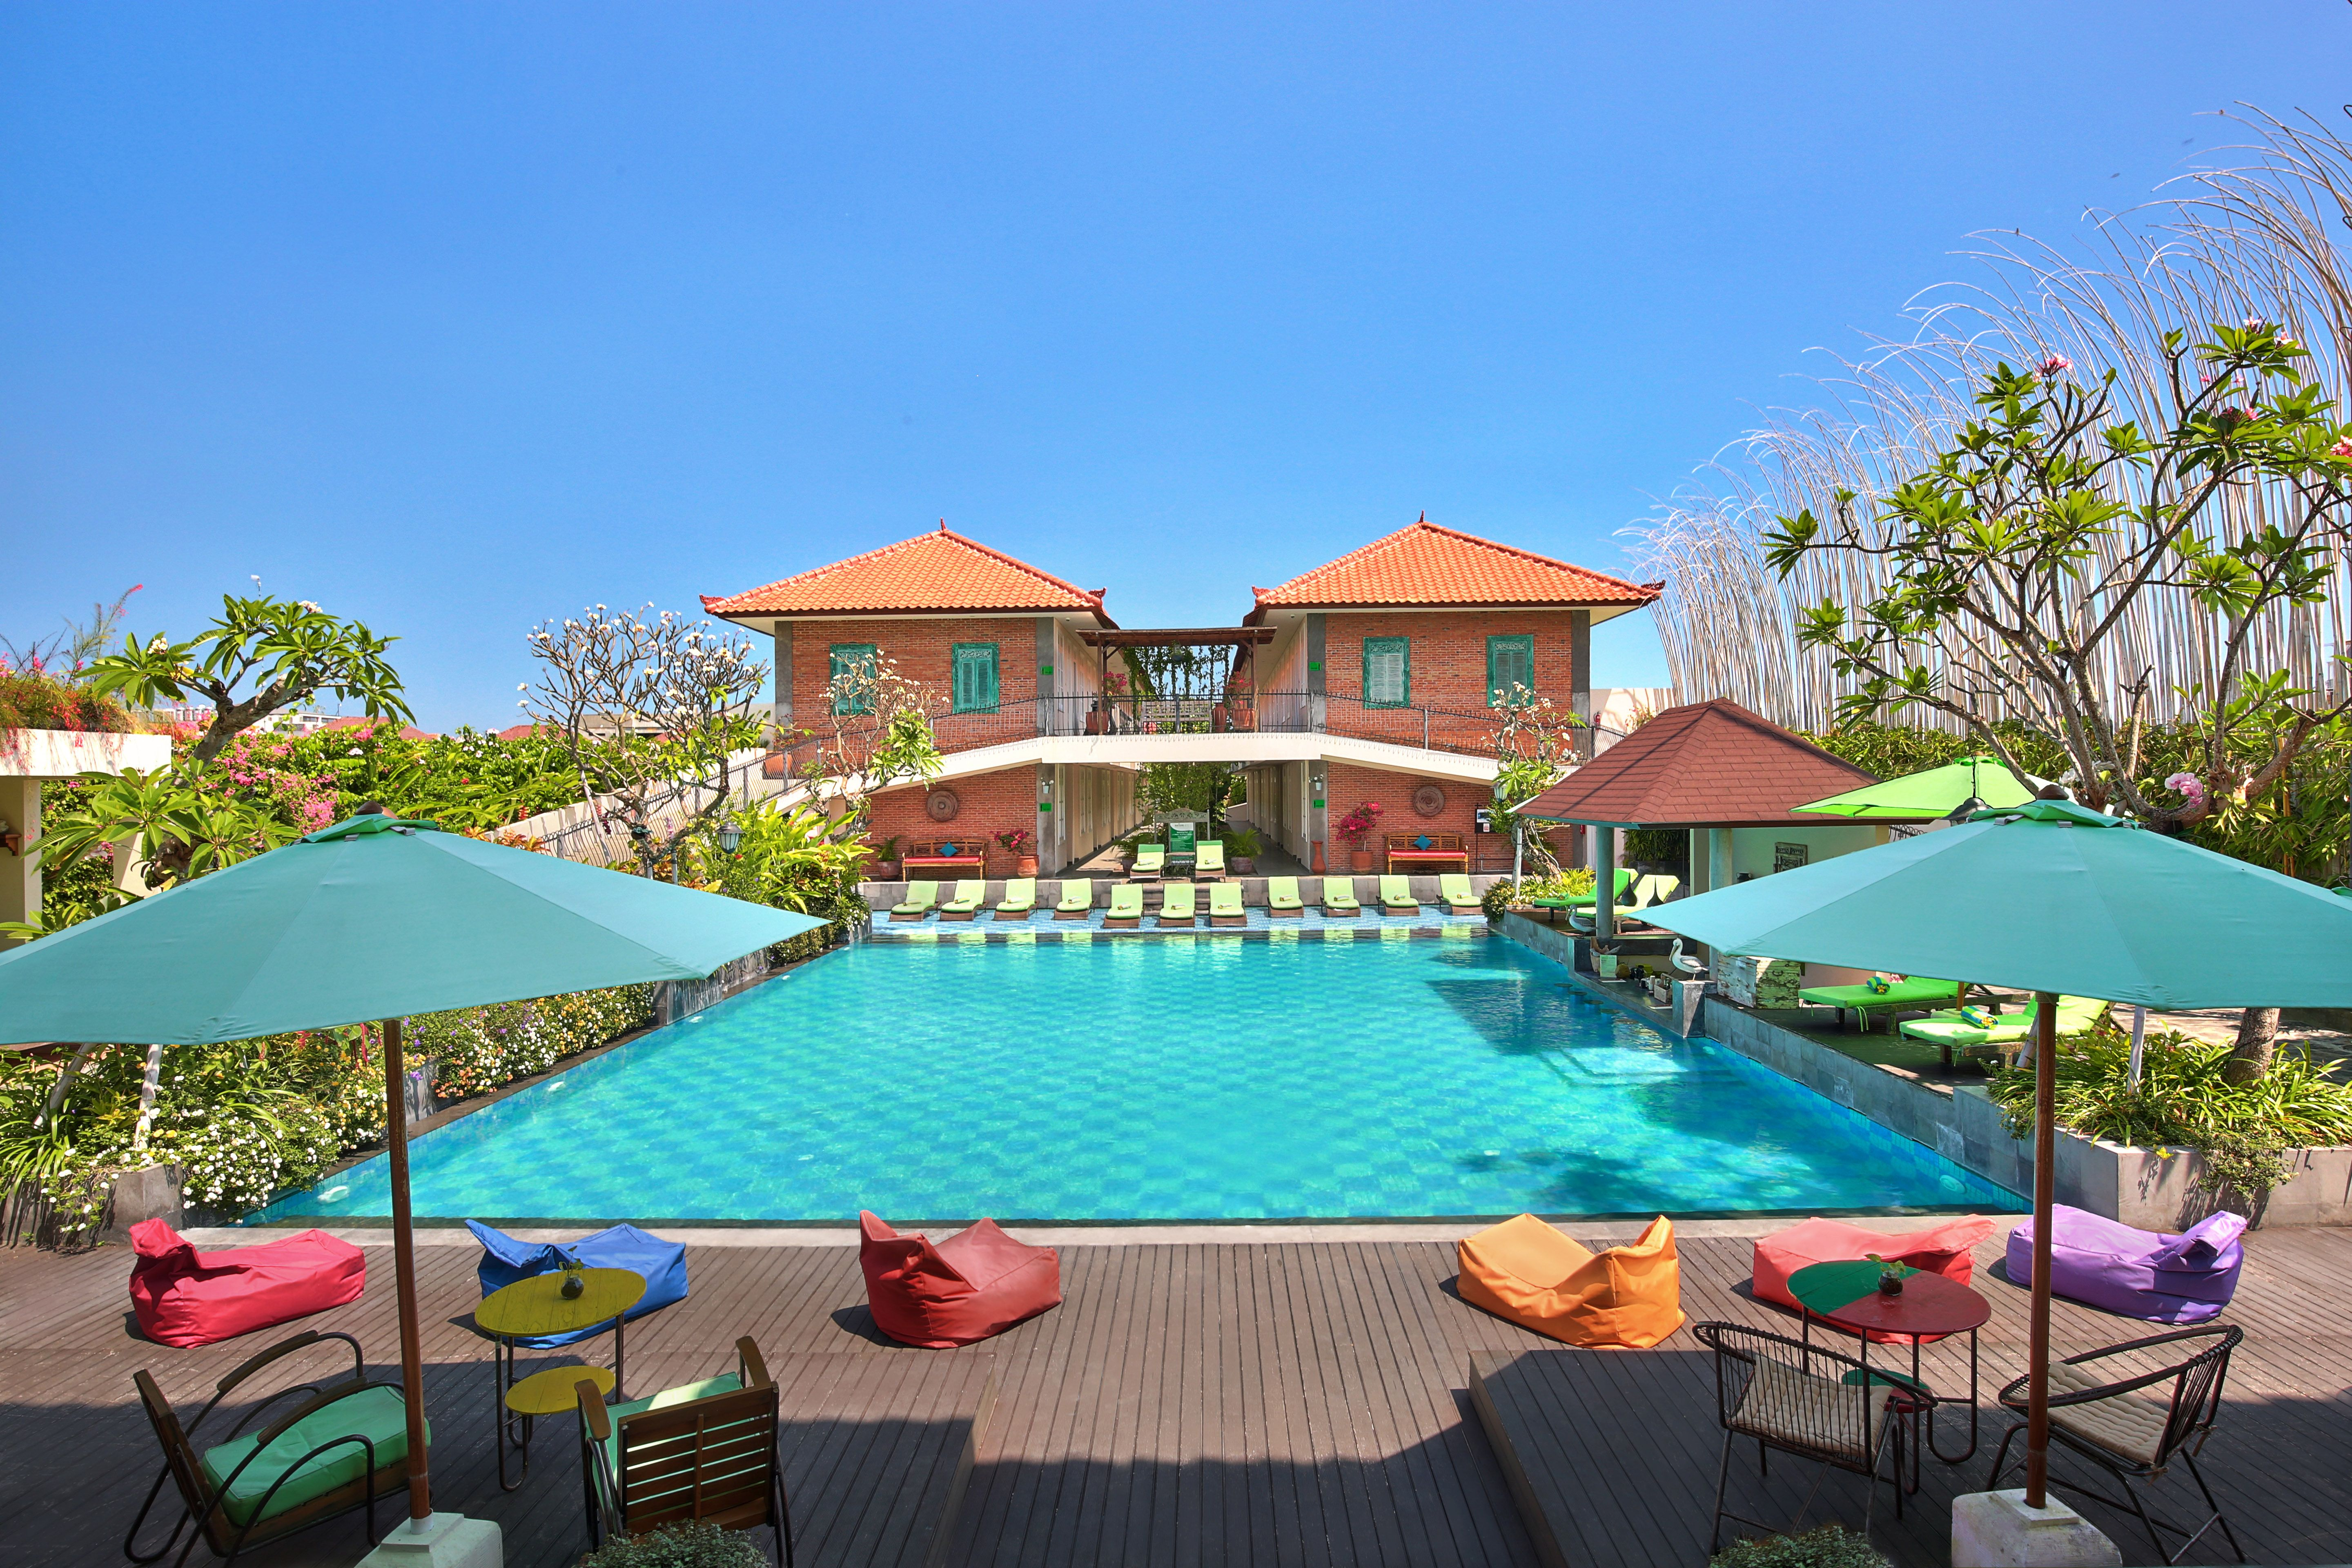 Maison At C Boutique Hotel & Spa Seminyak, Badung